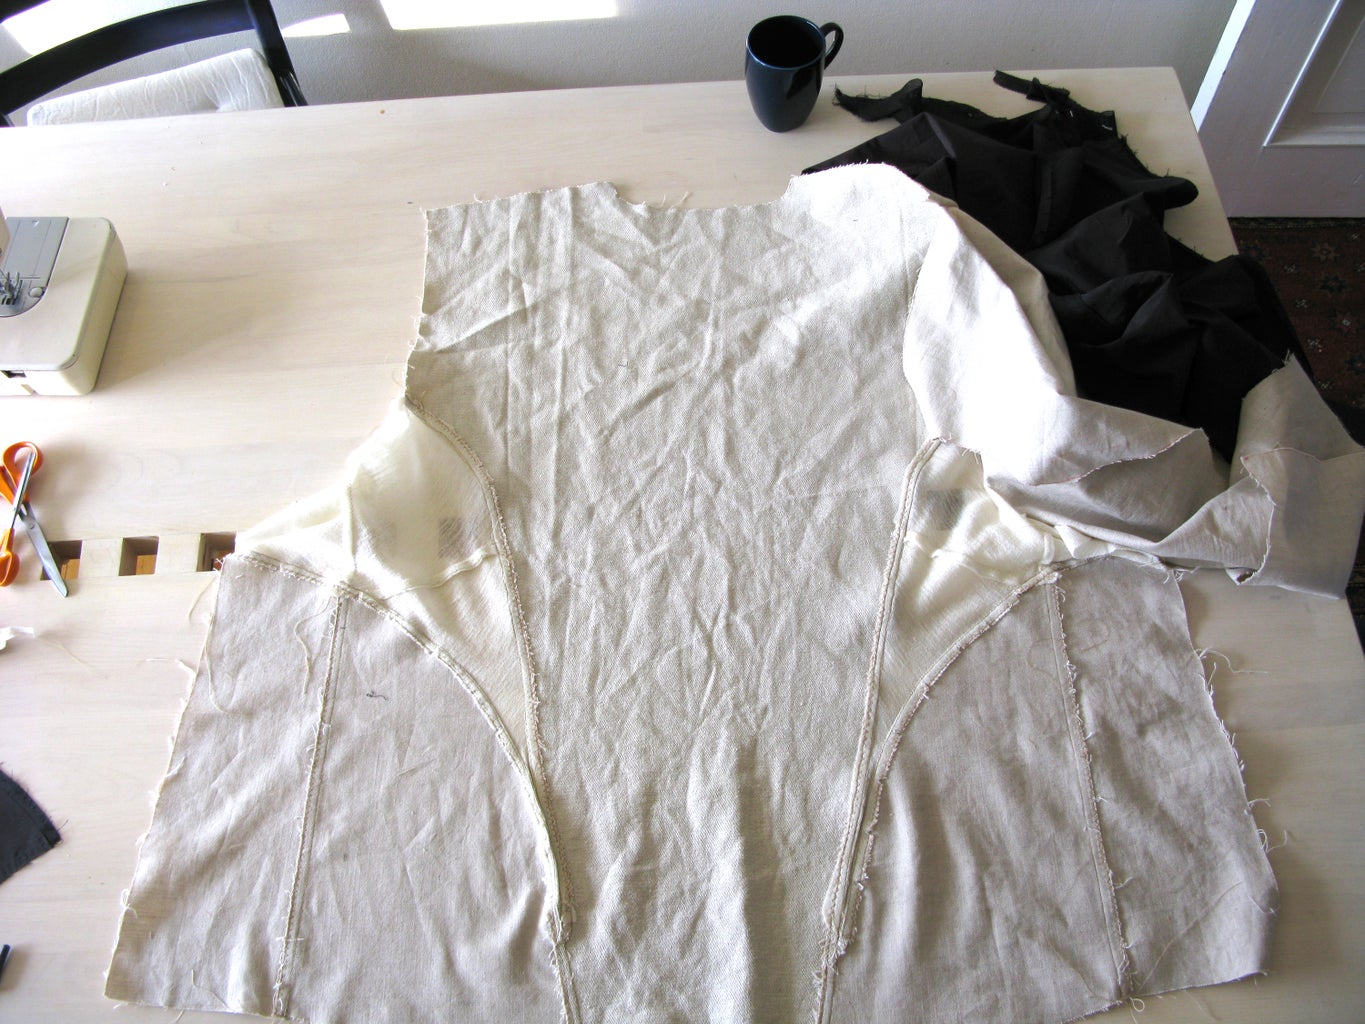 Sewing the Jacket